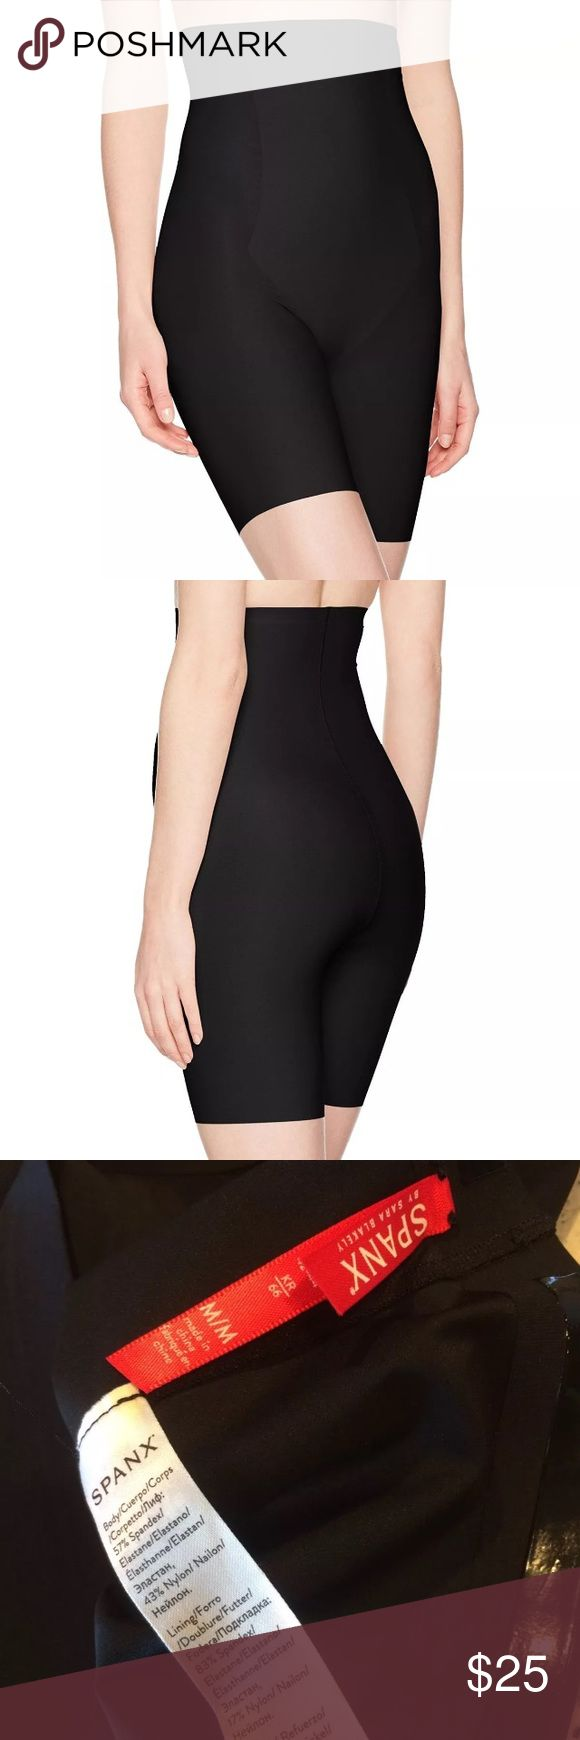 $72 NEW SPANX Thinstincts Targeted High Waist Shor $72 NEW  SPANX Thinstincts Targeted High Waist Shorts Black 10006R ~M~  New without tags/packaging. In stores now for $72 + Tax  Style #10006R Black High waist  Size M  High end department store shelf pull- new without tags. May have had customer contact  **Had deodorant on side which has been washed and ready to wear!  PRICED TO SELL FAST! PLEASE ASK ANY QUESTIONS BEFORE PURCHASE, THANKS CHECK OUT MY OTHER DESIGNER HANDBAGS AND CLOTHING…